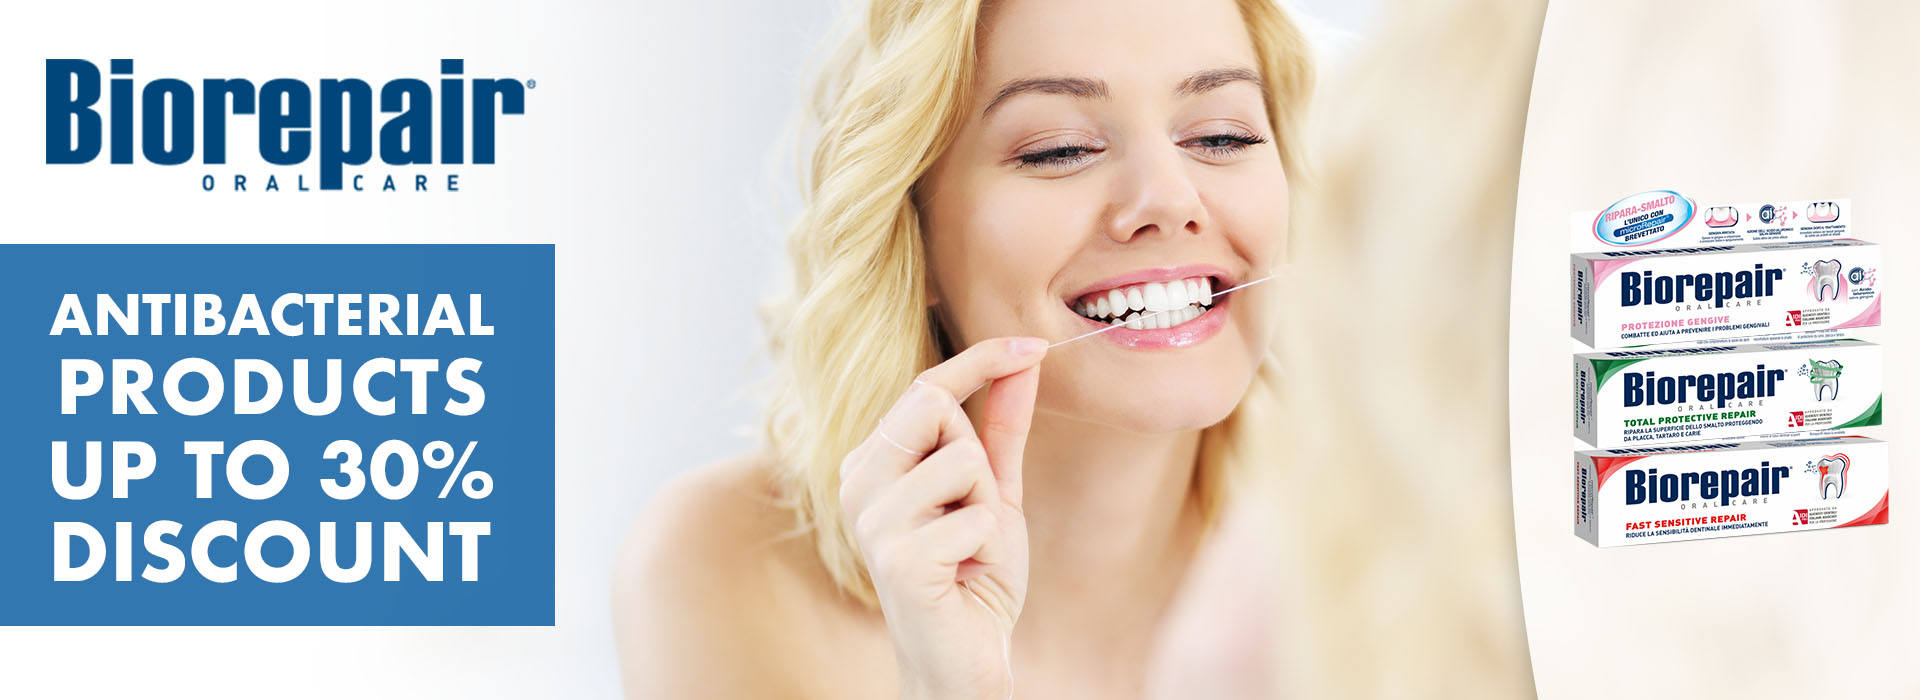 Antibacterial Oral Care Products